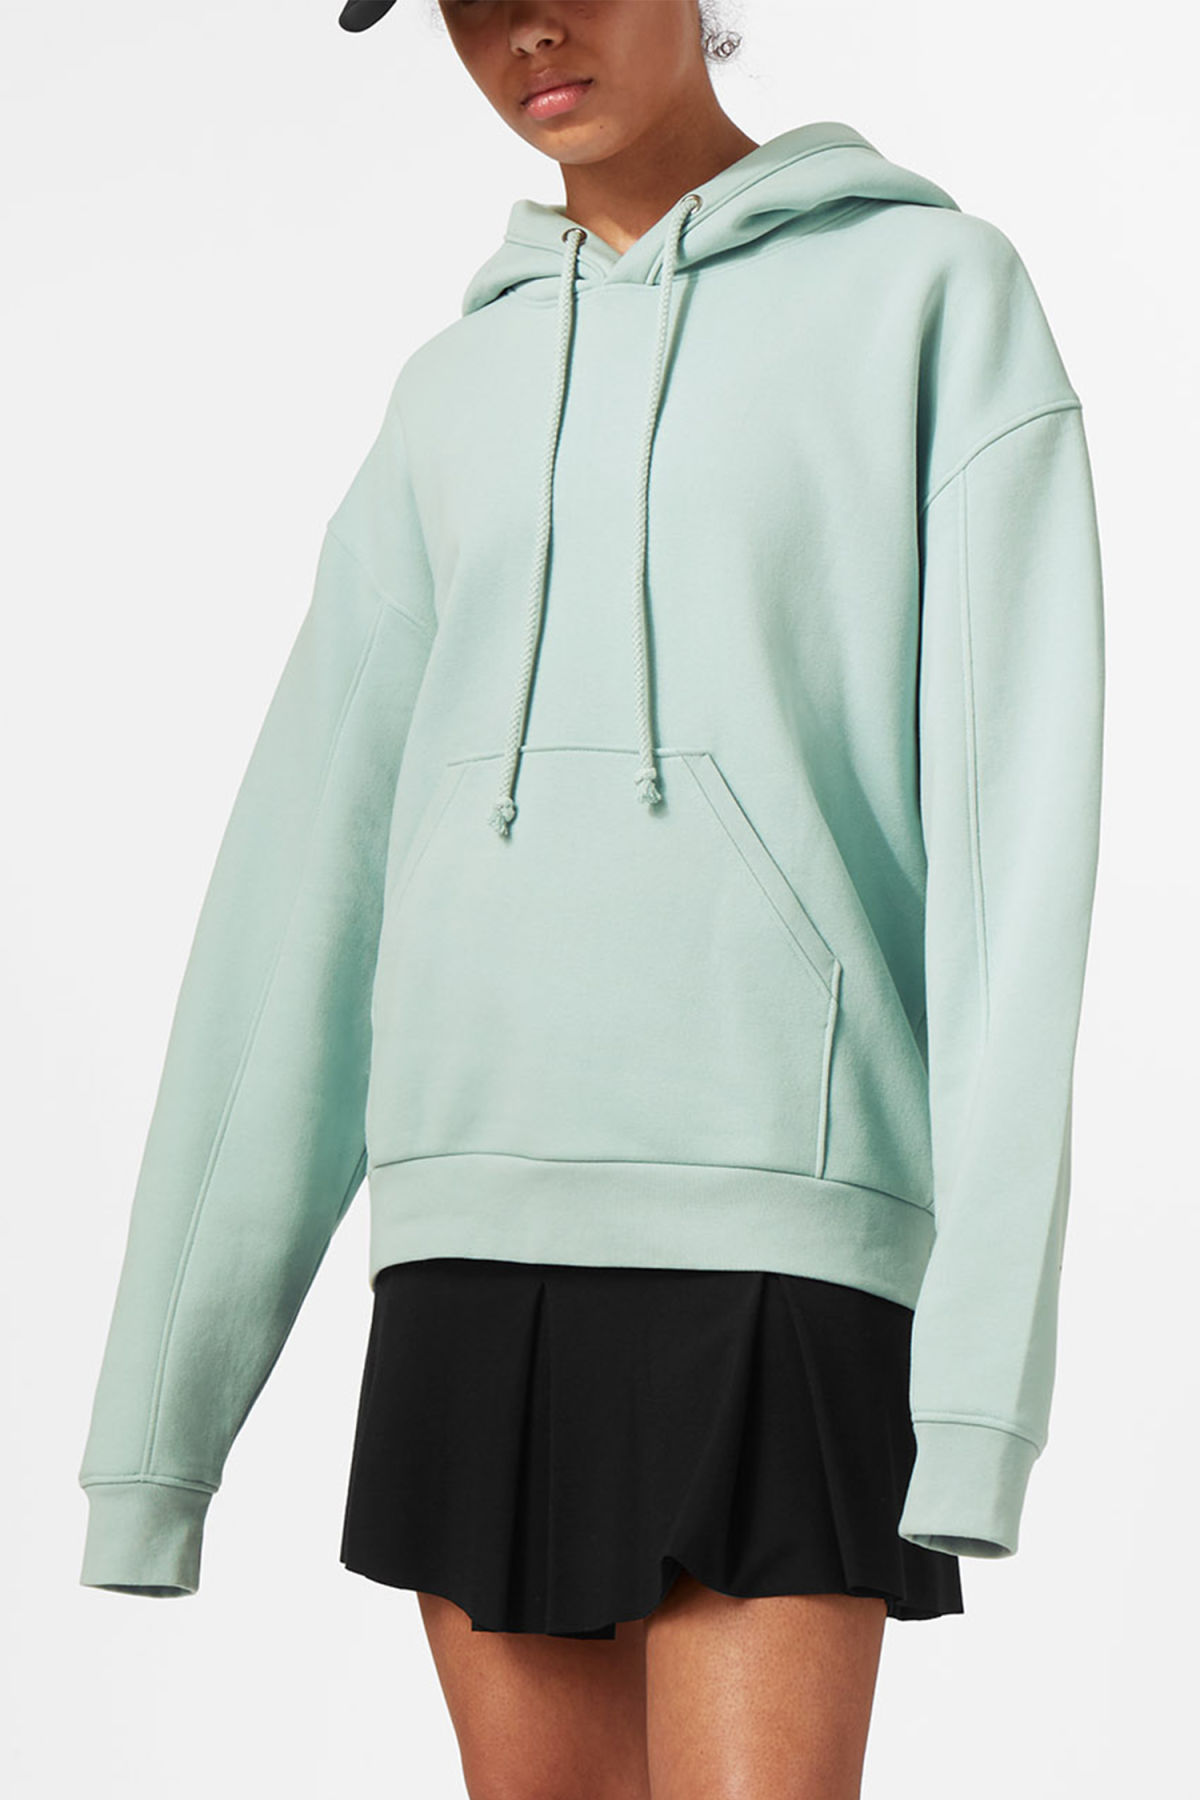 Discount Largest Supplier Weekday Ailin Hooded Sweatshirt - Turquoise Discount Browse Excellent Online MECKj